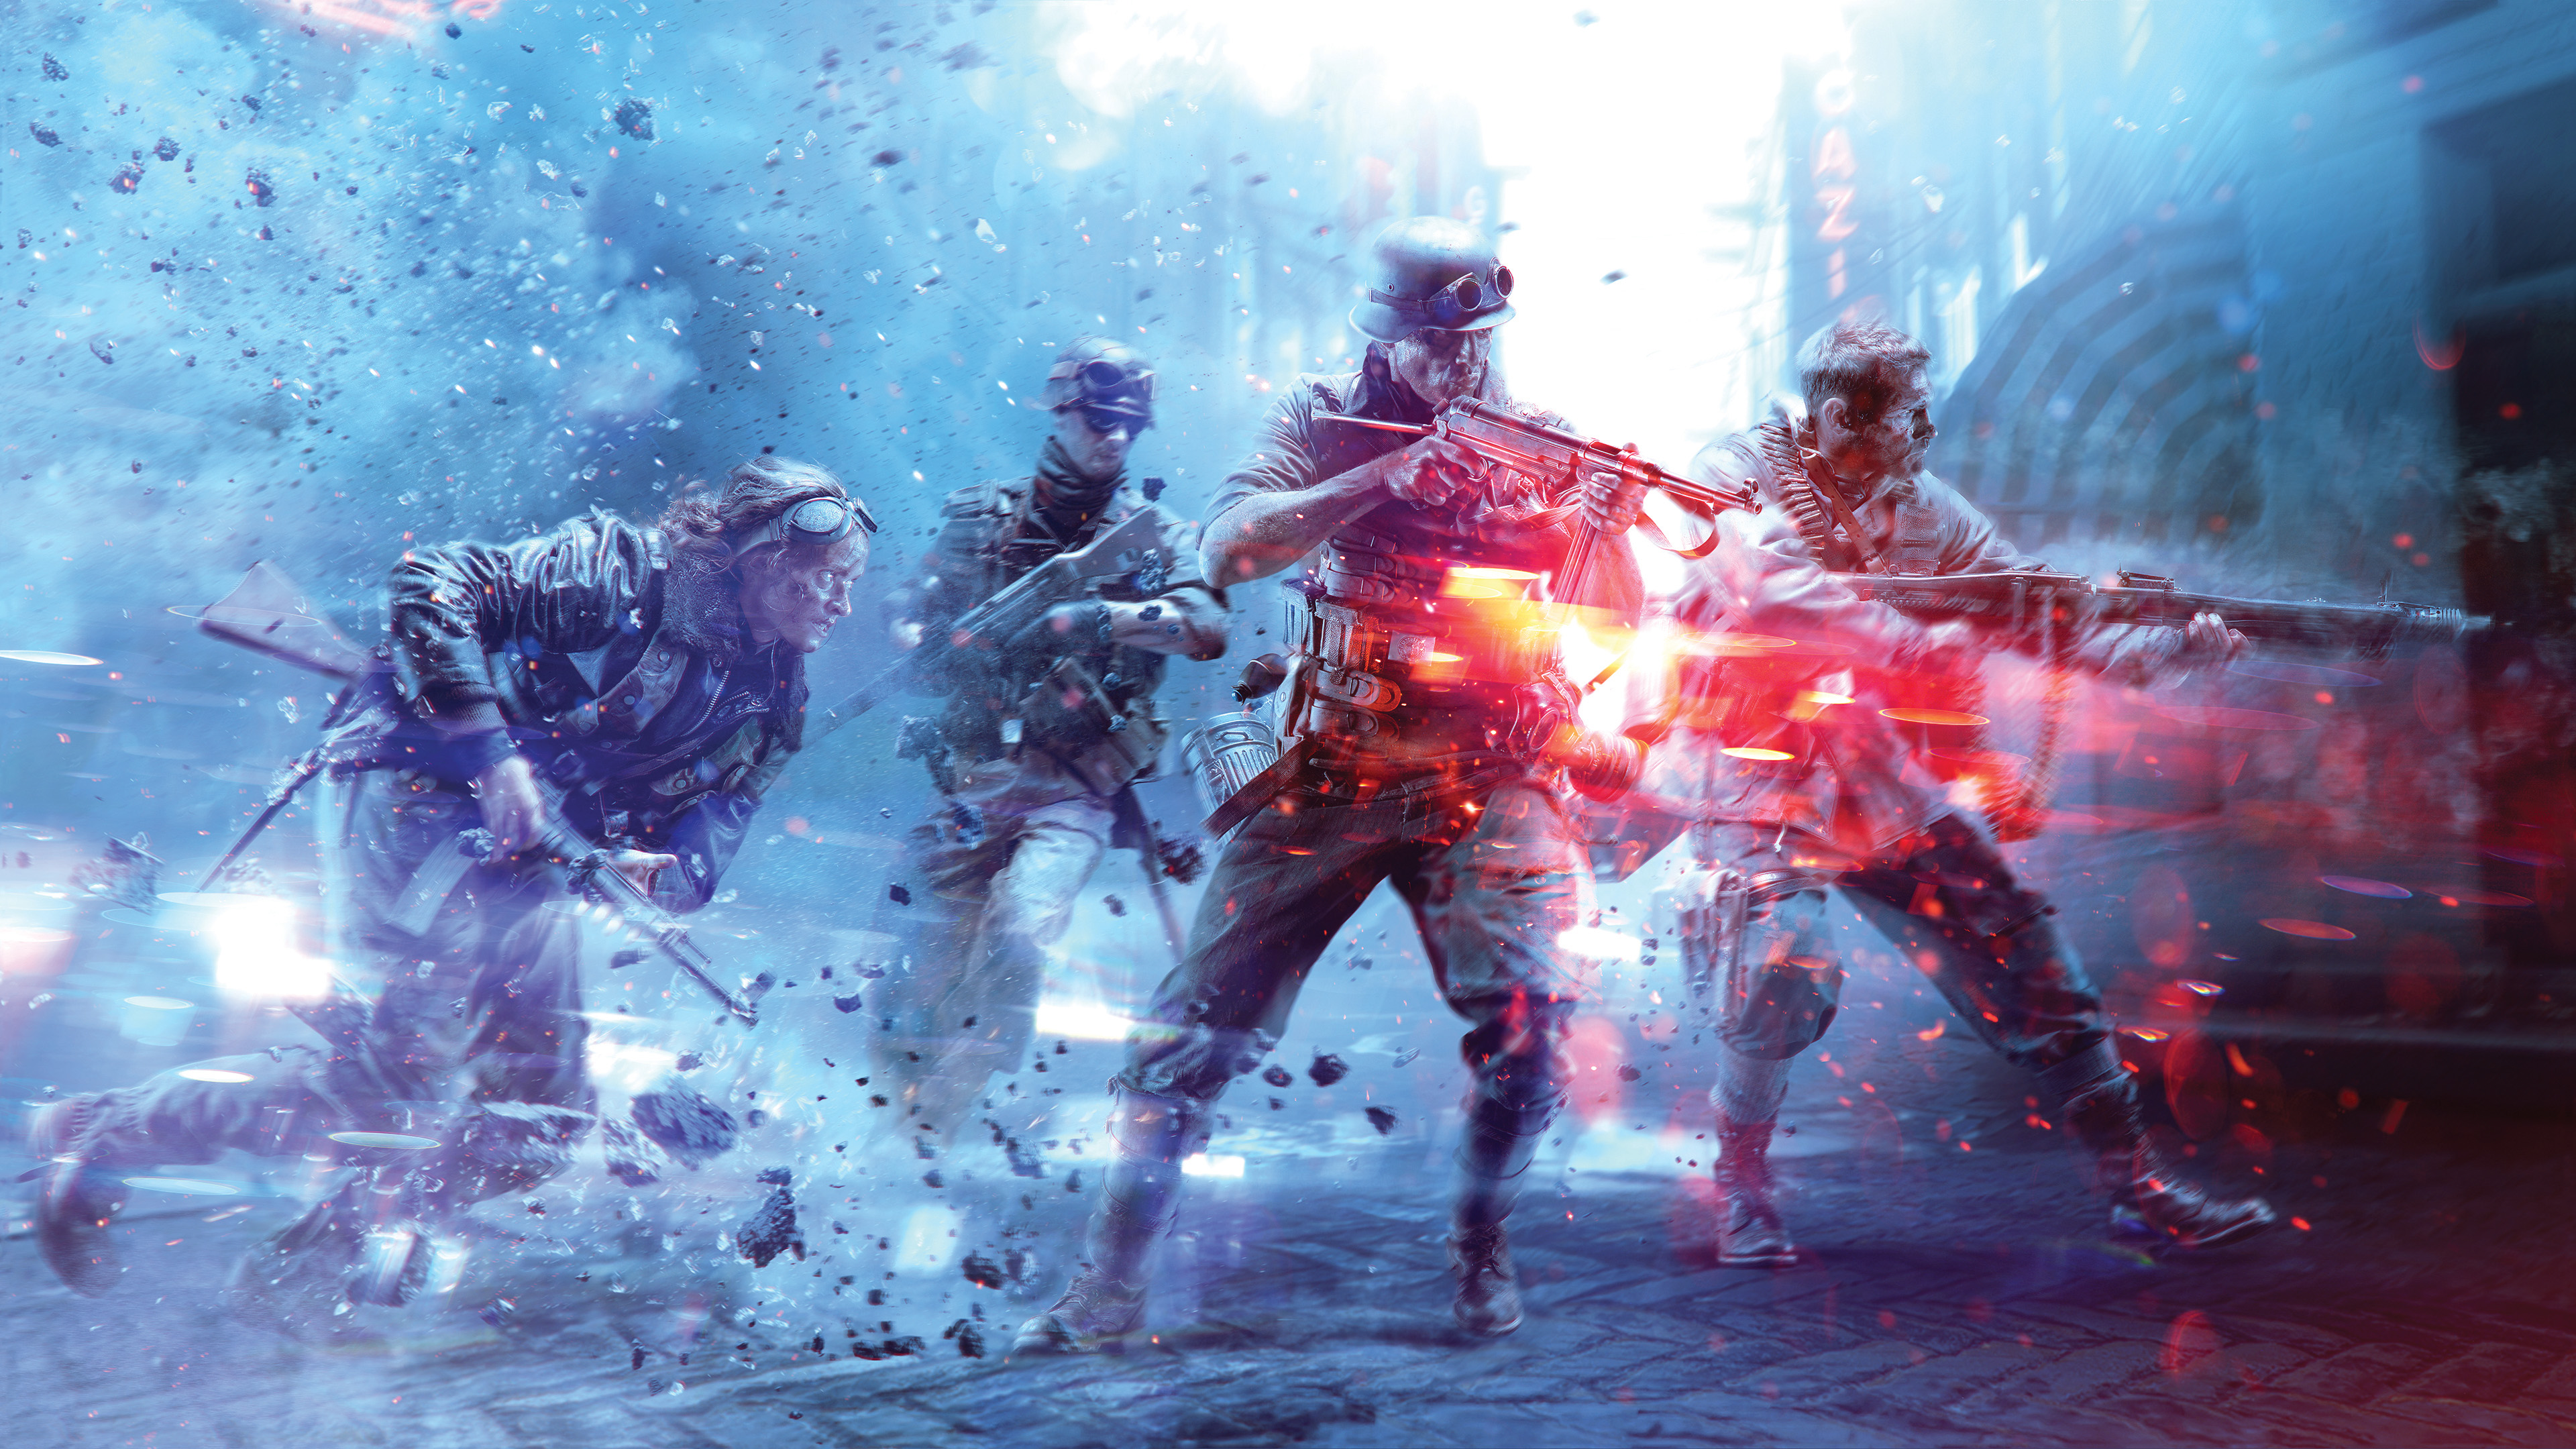 Battlefield 5: Firestorm players are struggling to find